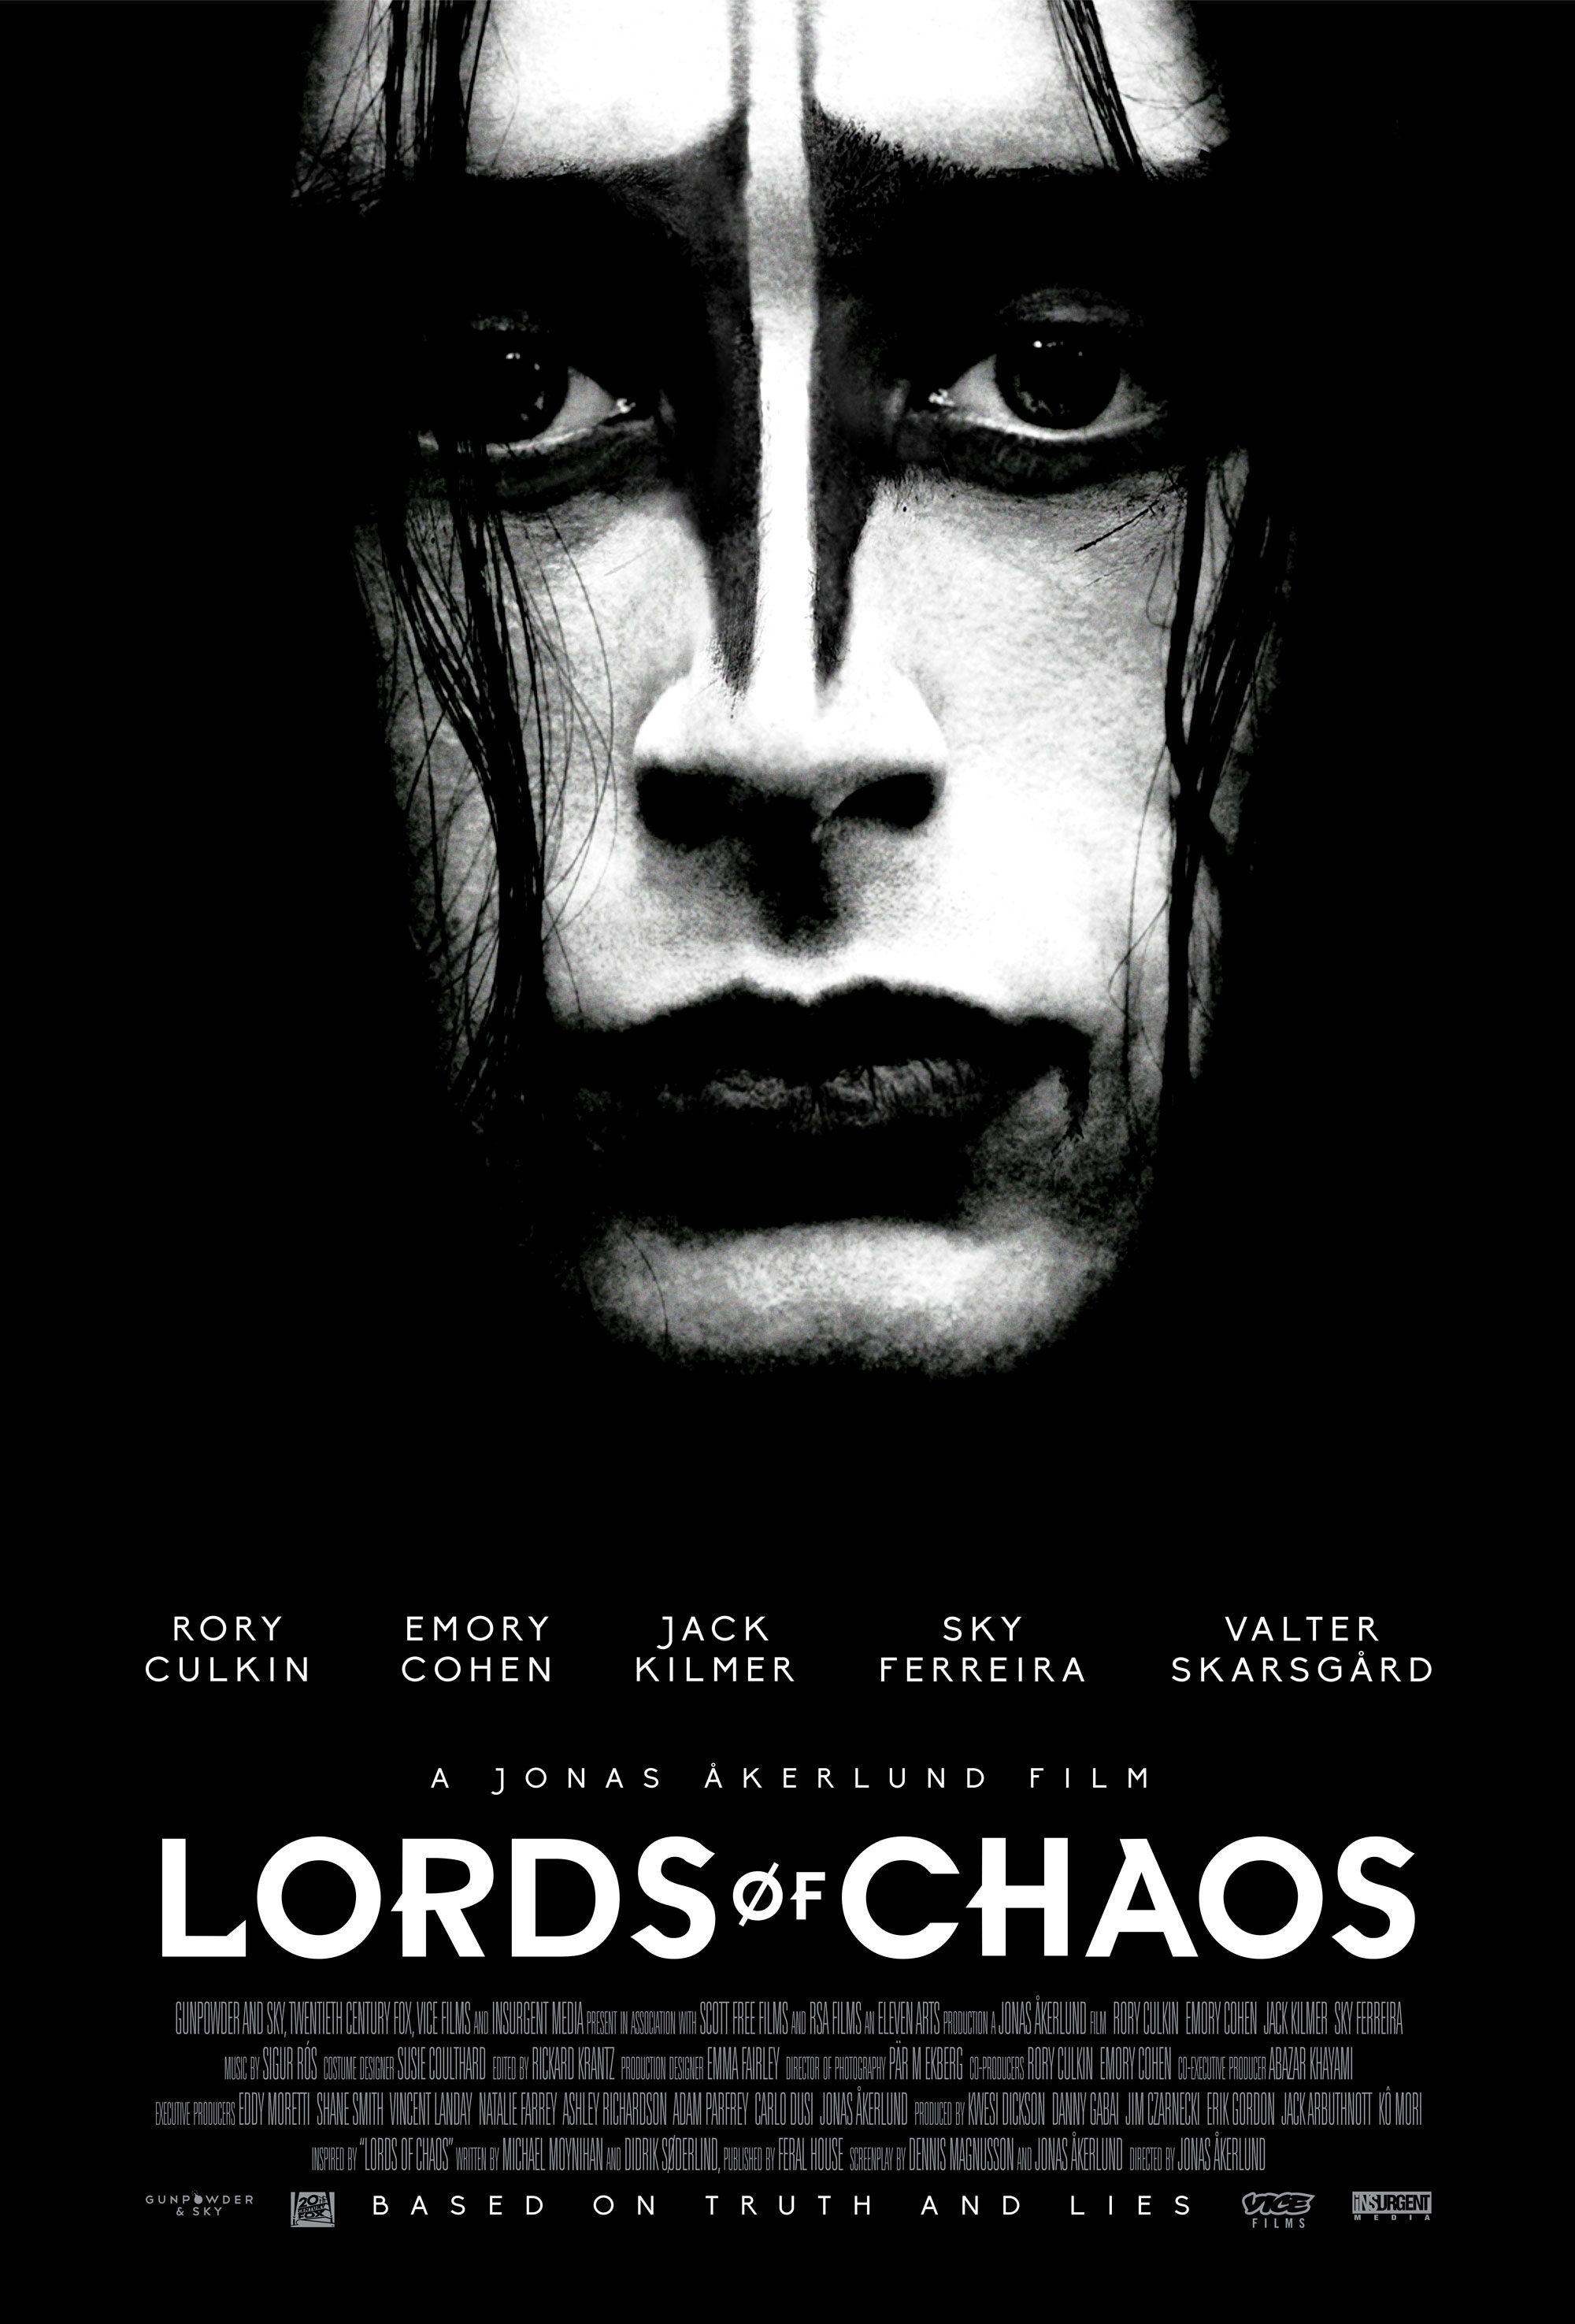 Lords of Chaos Poster Reveals a Black Metal Rory Culkin ...